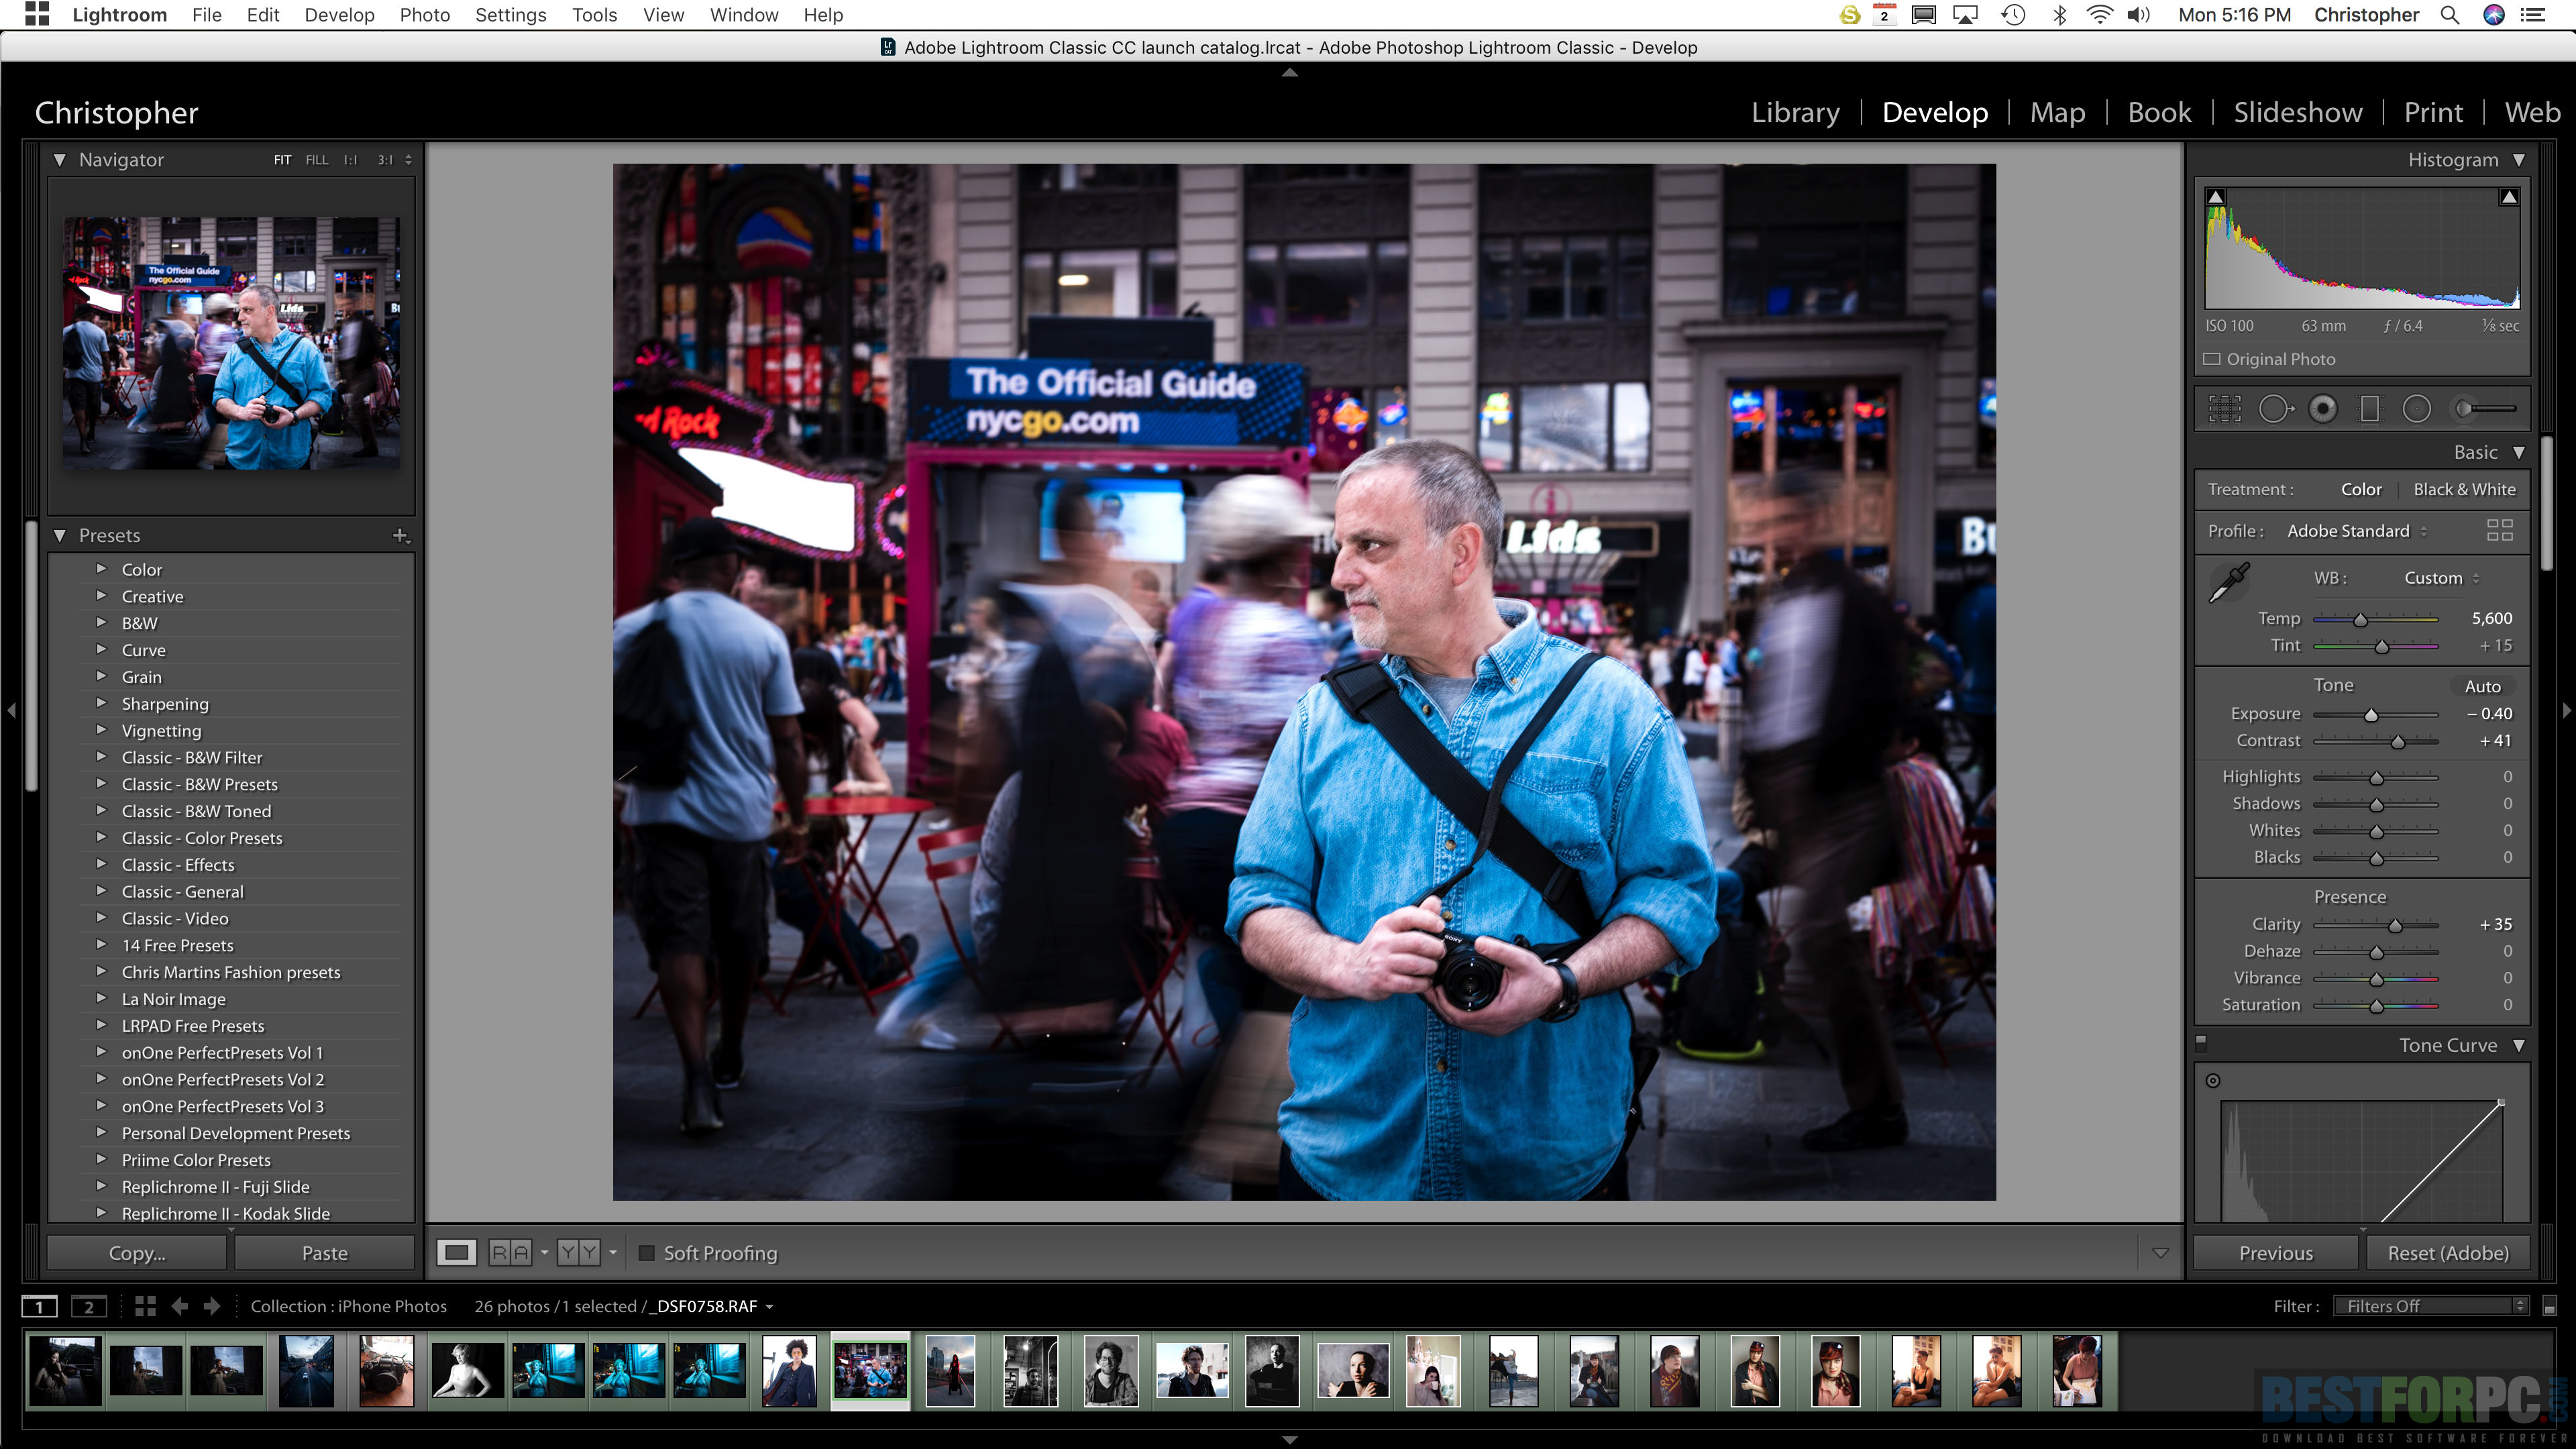 Adobe Photoshop Lightroom Classic CC 2019 Latest Version Download